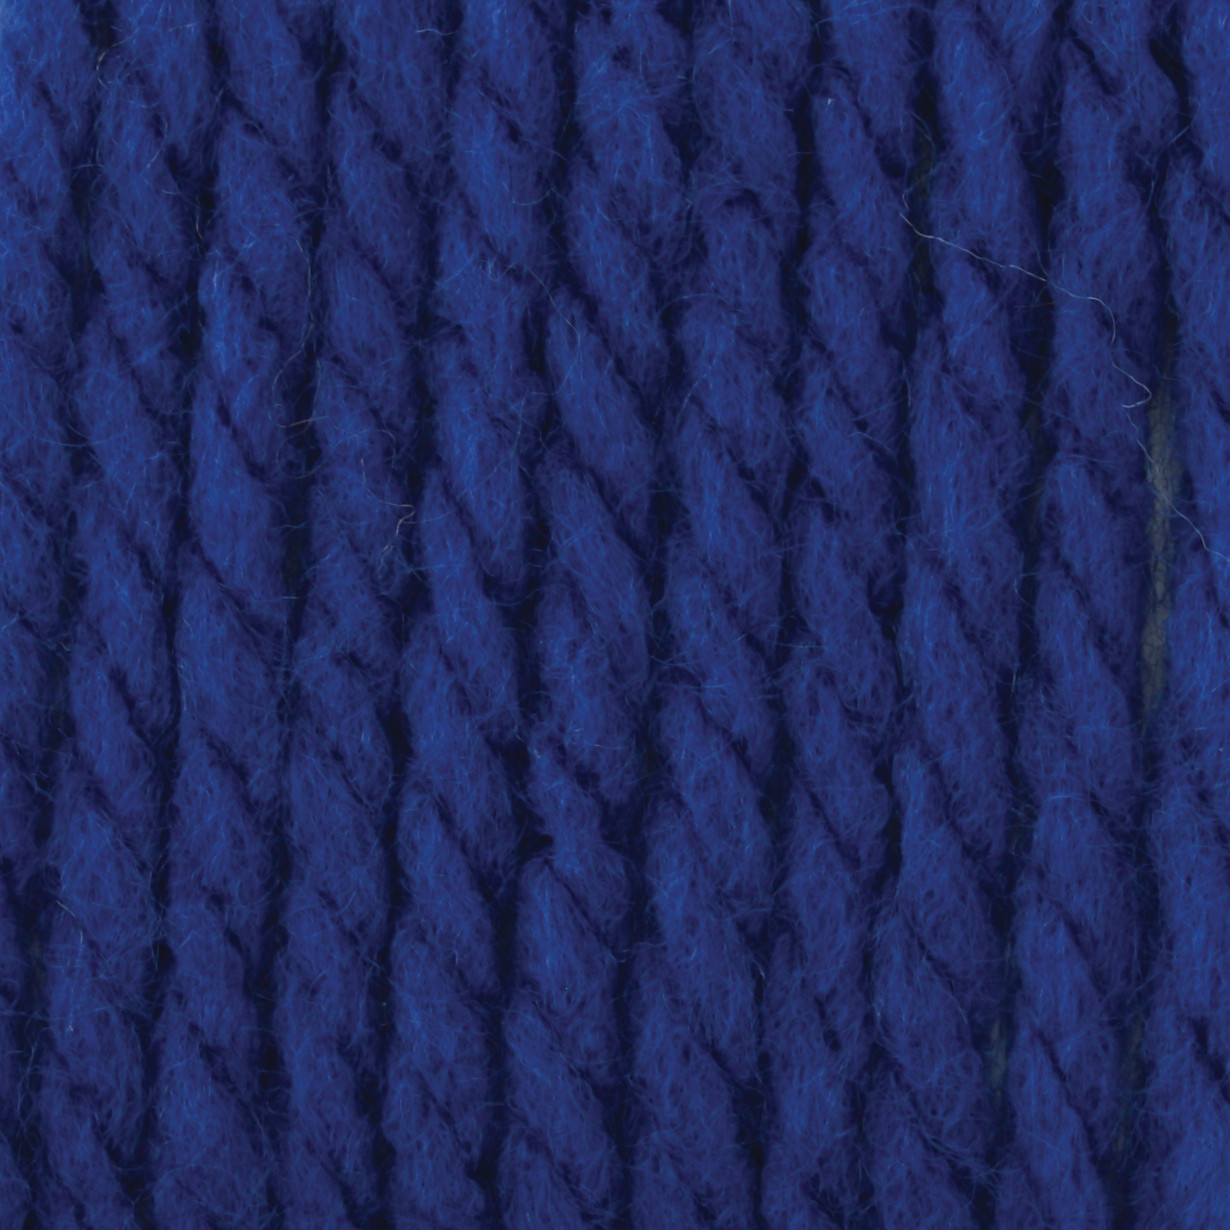 Bernat Royal Blue Softee Chunky Yarn 6 Super Bulky